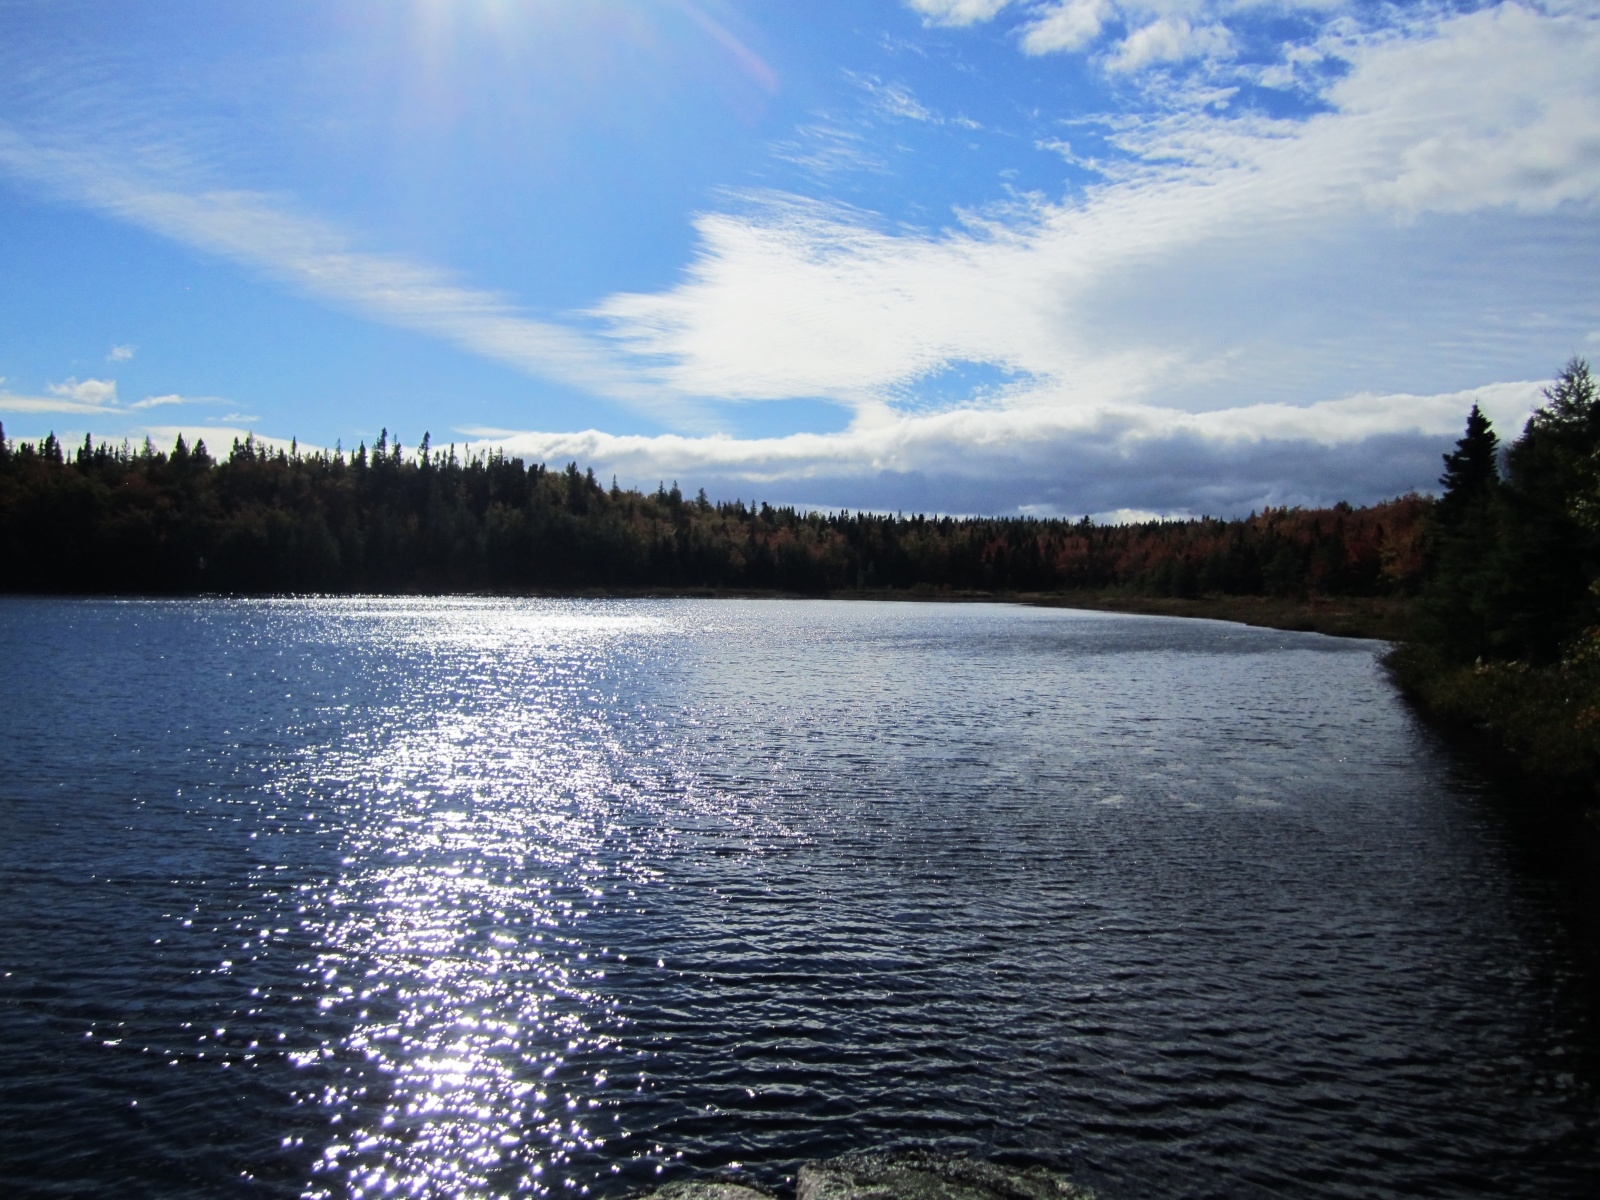 Jigging Cove Lake